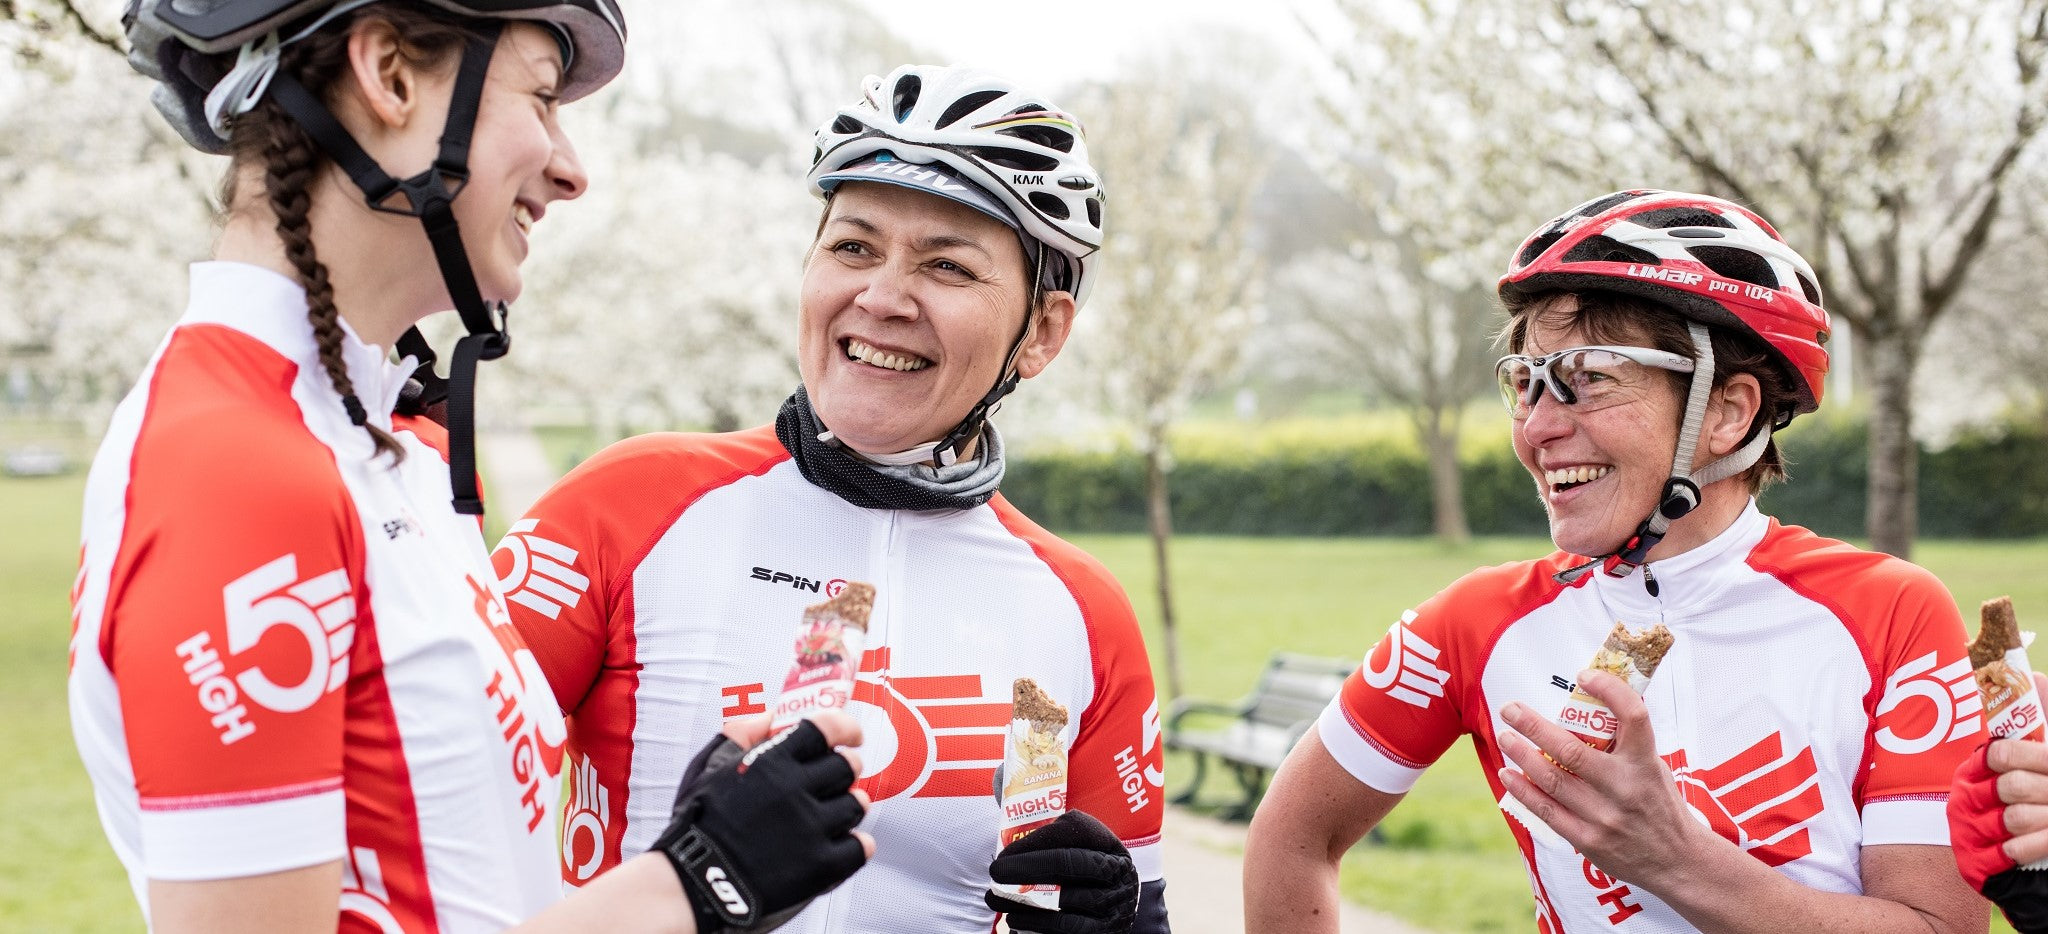 Cyclists eat HIGH5 Energy Bars